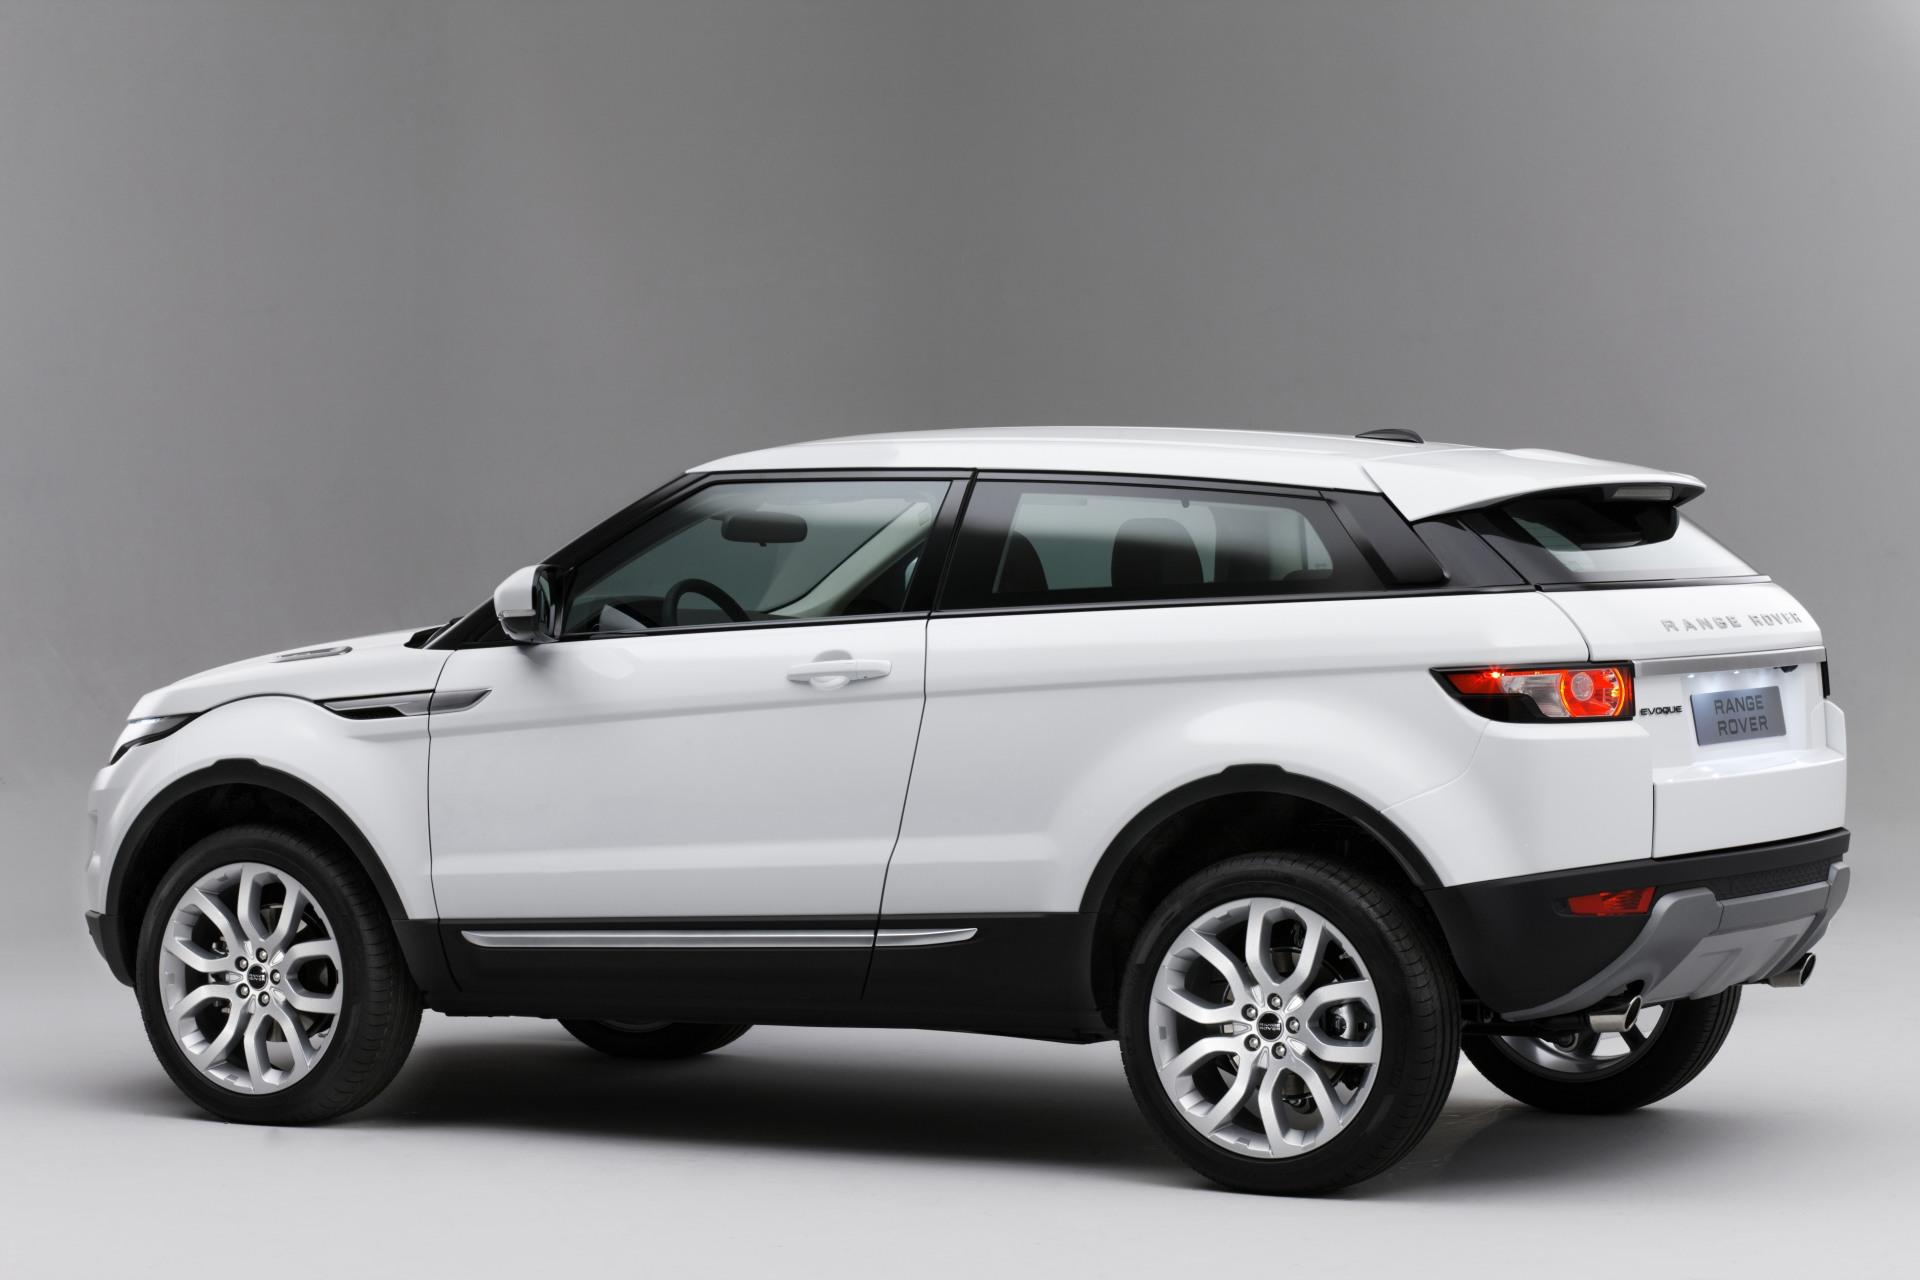 Range Rover Evoque Hire VIP Chauffeur Car Hire